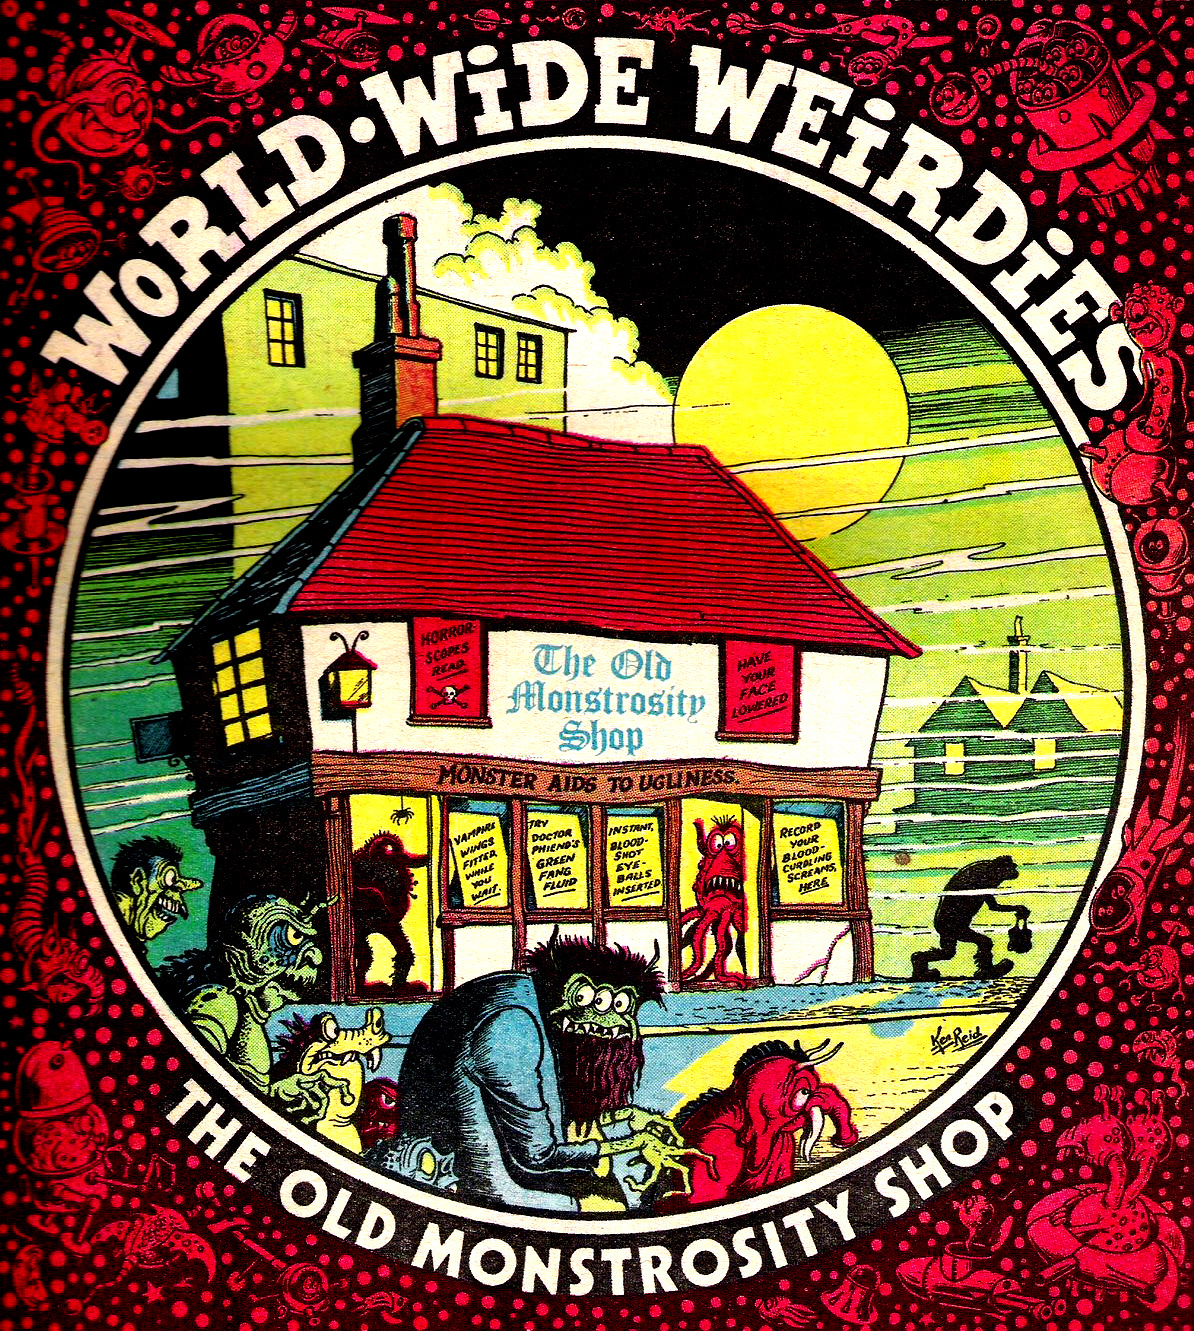 Ken Reid - World Wide Weirdies 48